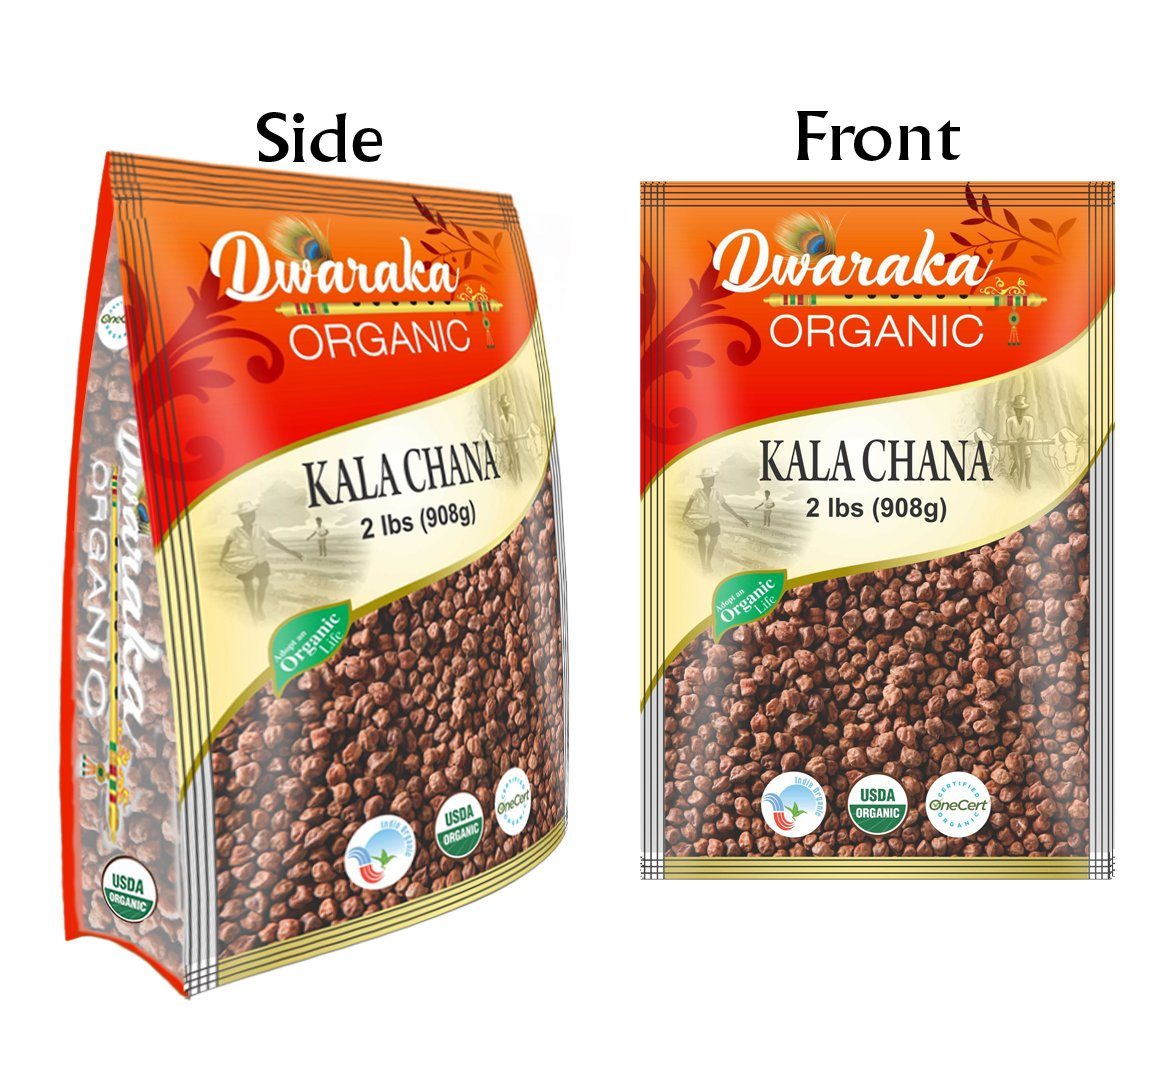 Lentils - 142 - Blowout Sale! Save up to 68% | Smokey